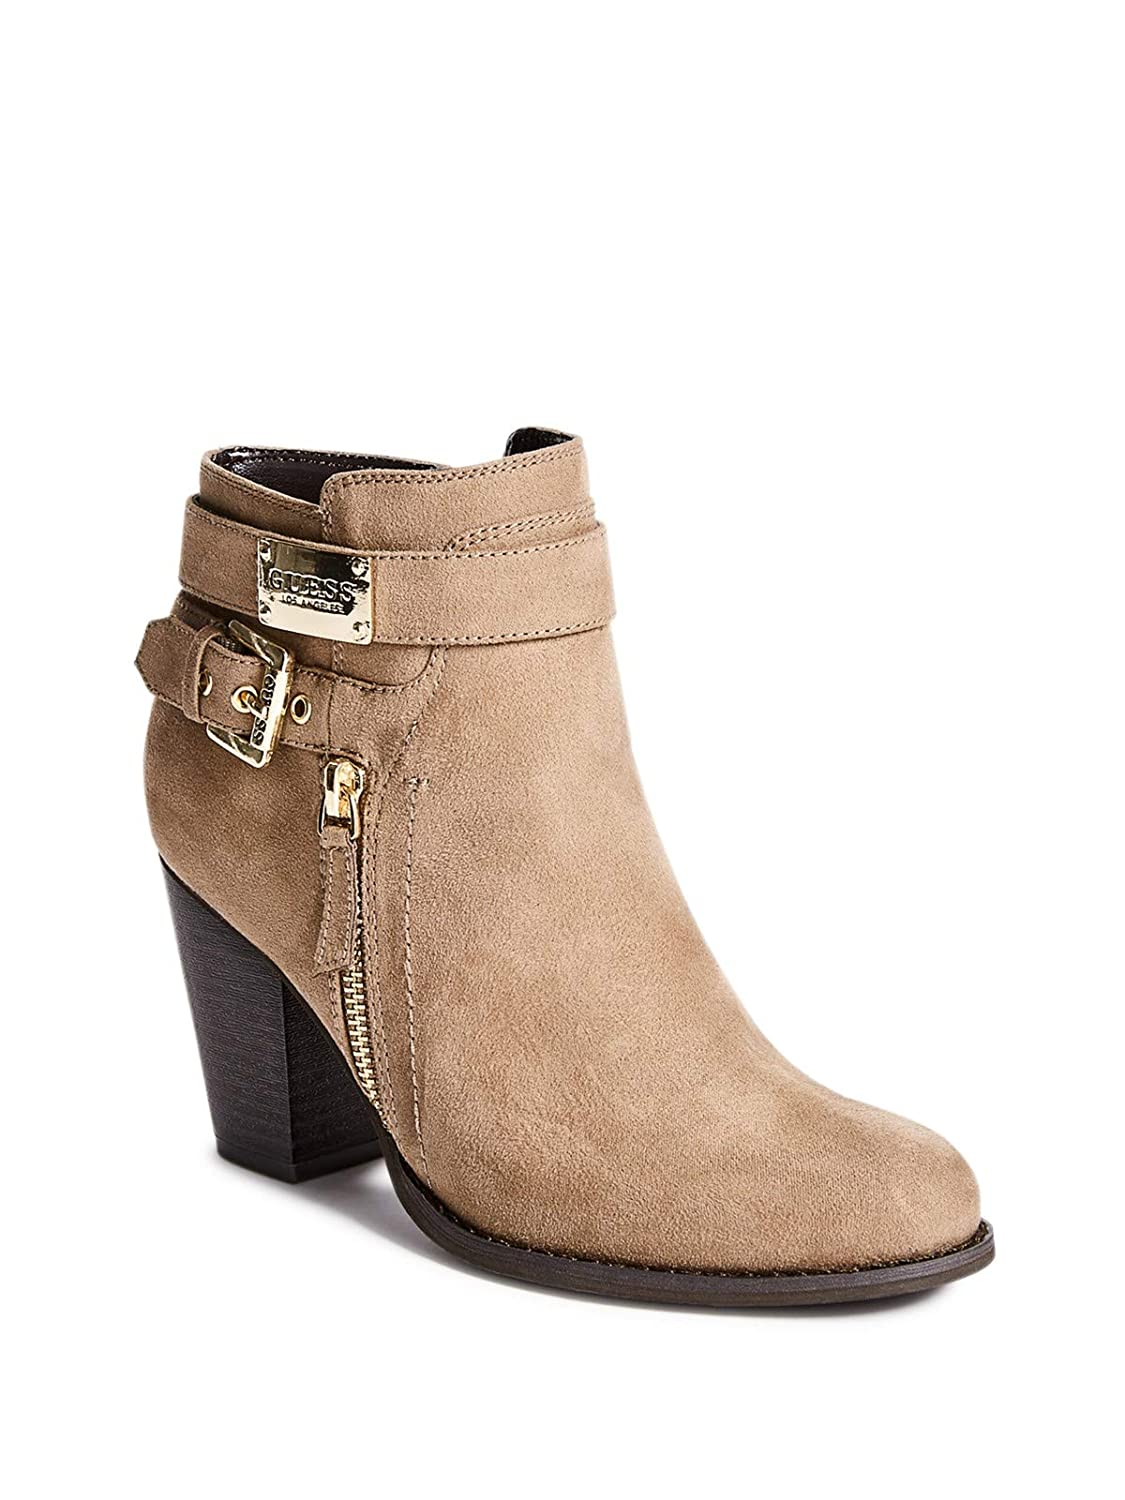 71a305e18b9 GUESS Factory Women's Fury Faux-Suede Buckle Zip-Up Booties